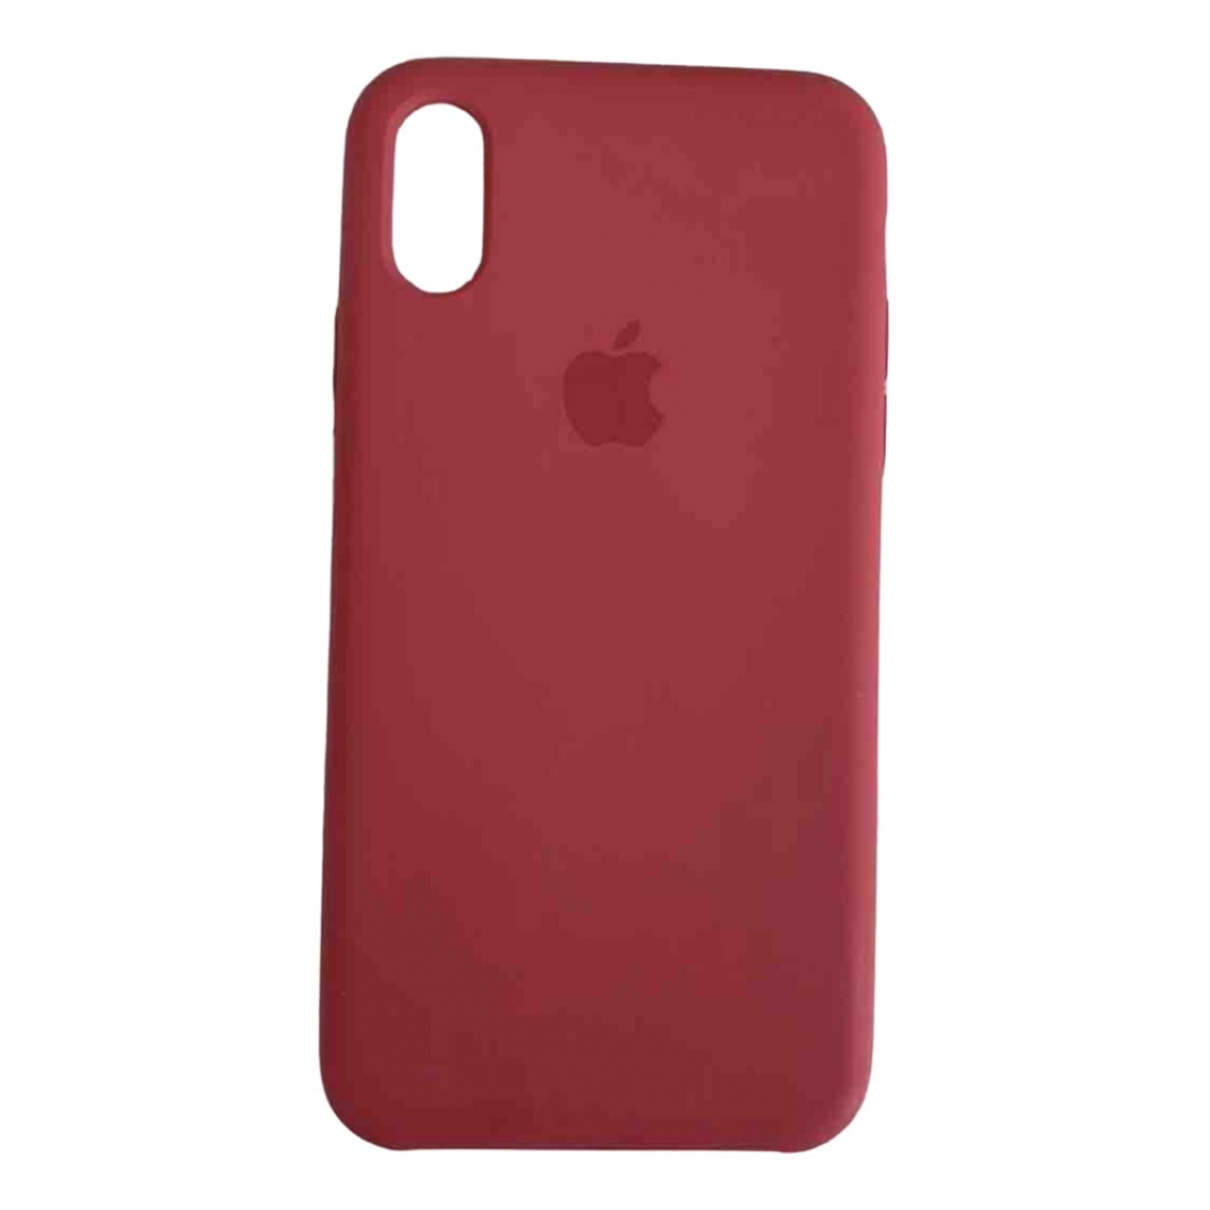 Funda iphone de Cuero Apple